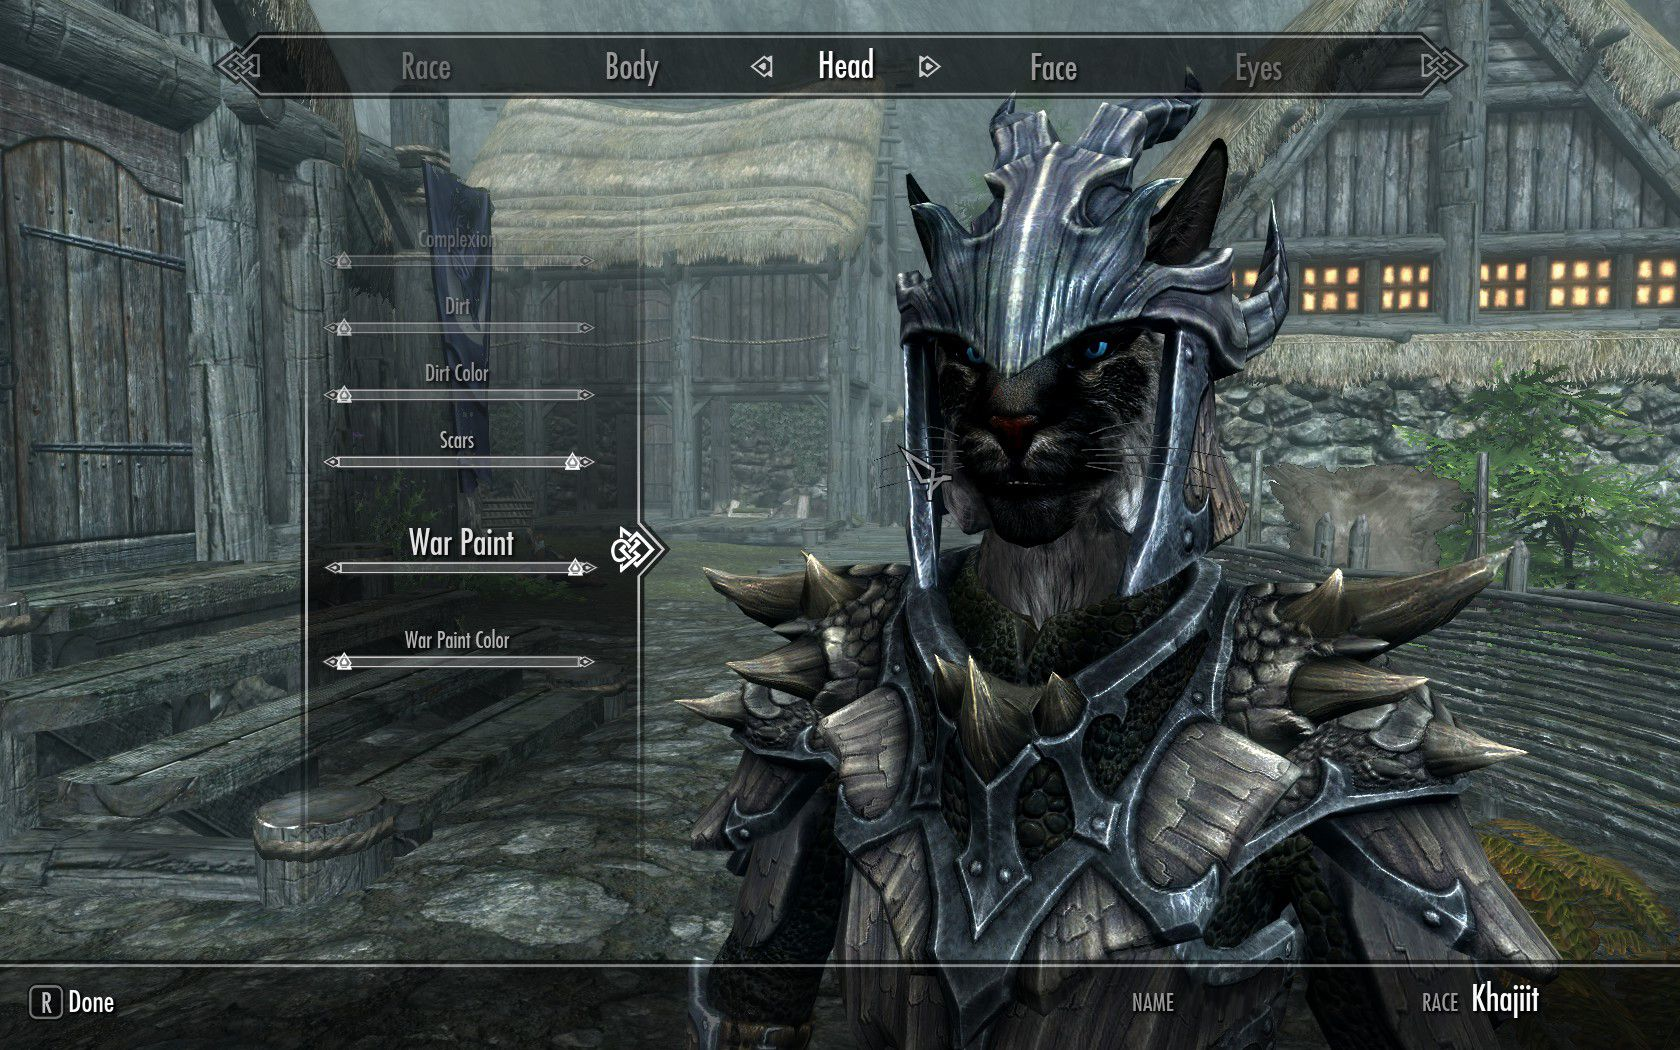 Be Me Playing Skyrim Khajiit Master Race Every Person